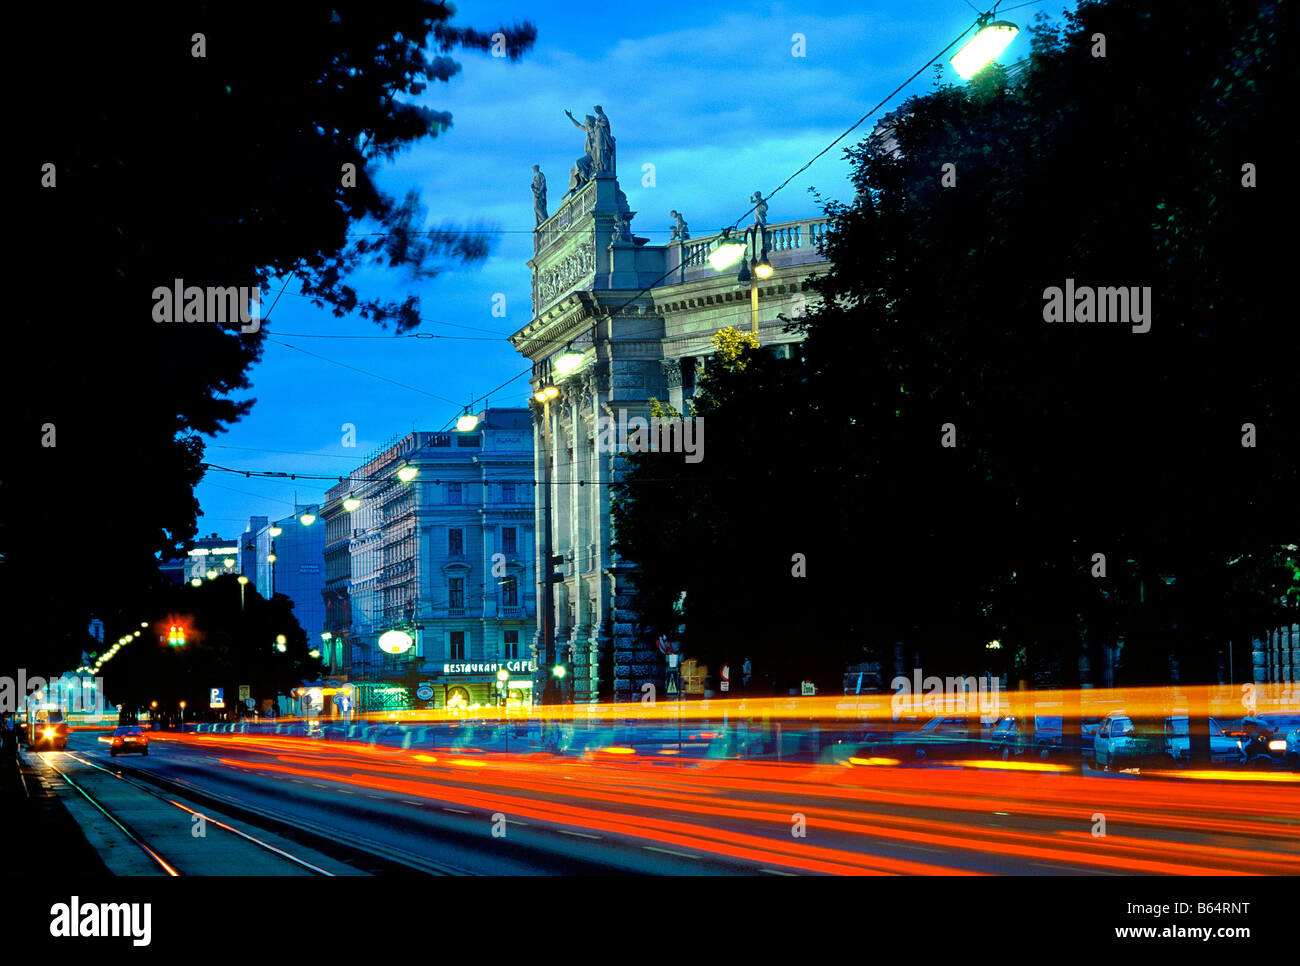 Burg theater at night in Vienna Austria - Stock Image